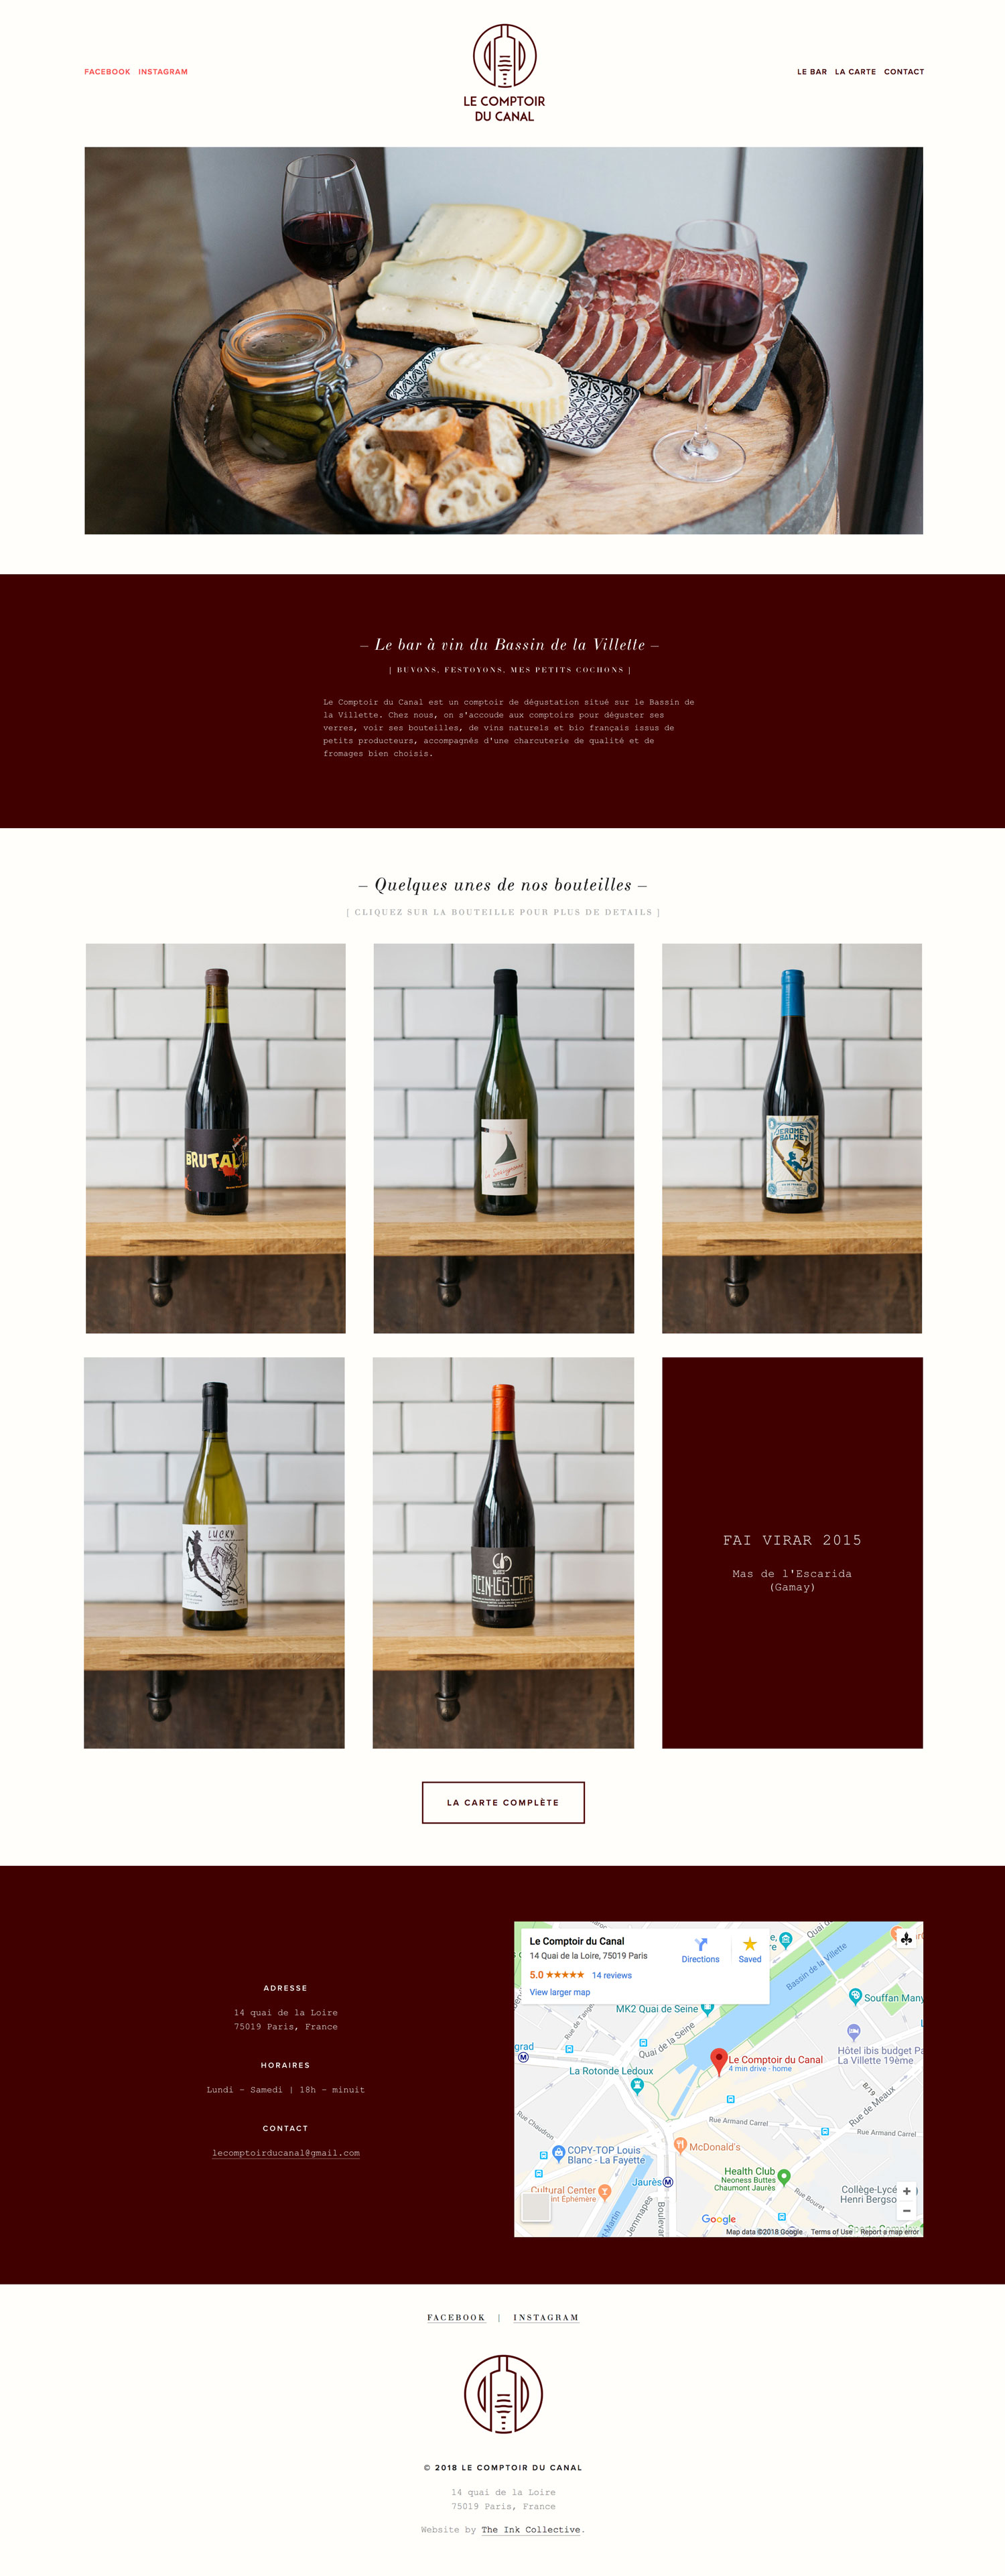 The_Ink_Collective_Creative_Content_Design_Editorial_Agency_Paris_Sydney_Brand_Identity_Web_Design_Photography_Paris_Bar_Le_Comptoir_du_Canal_Cover_Banner_Website_Design_Full_Page_1.jpg